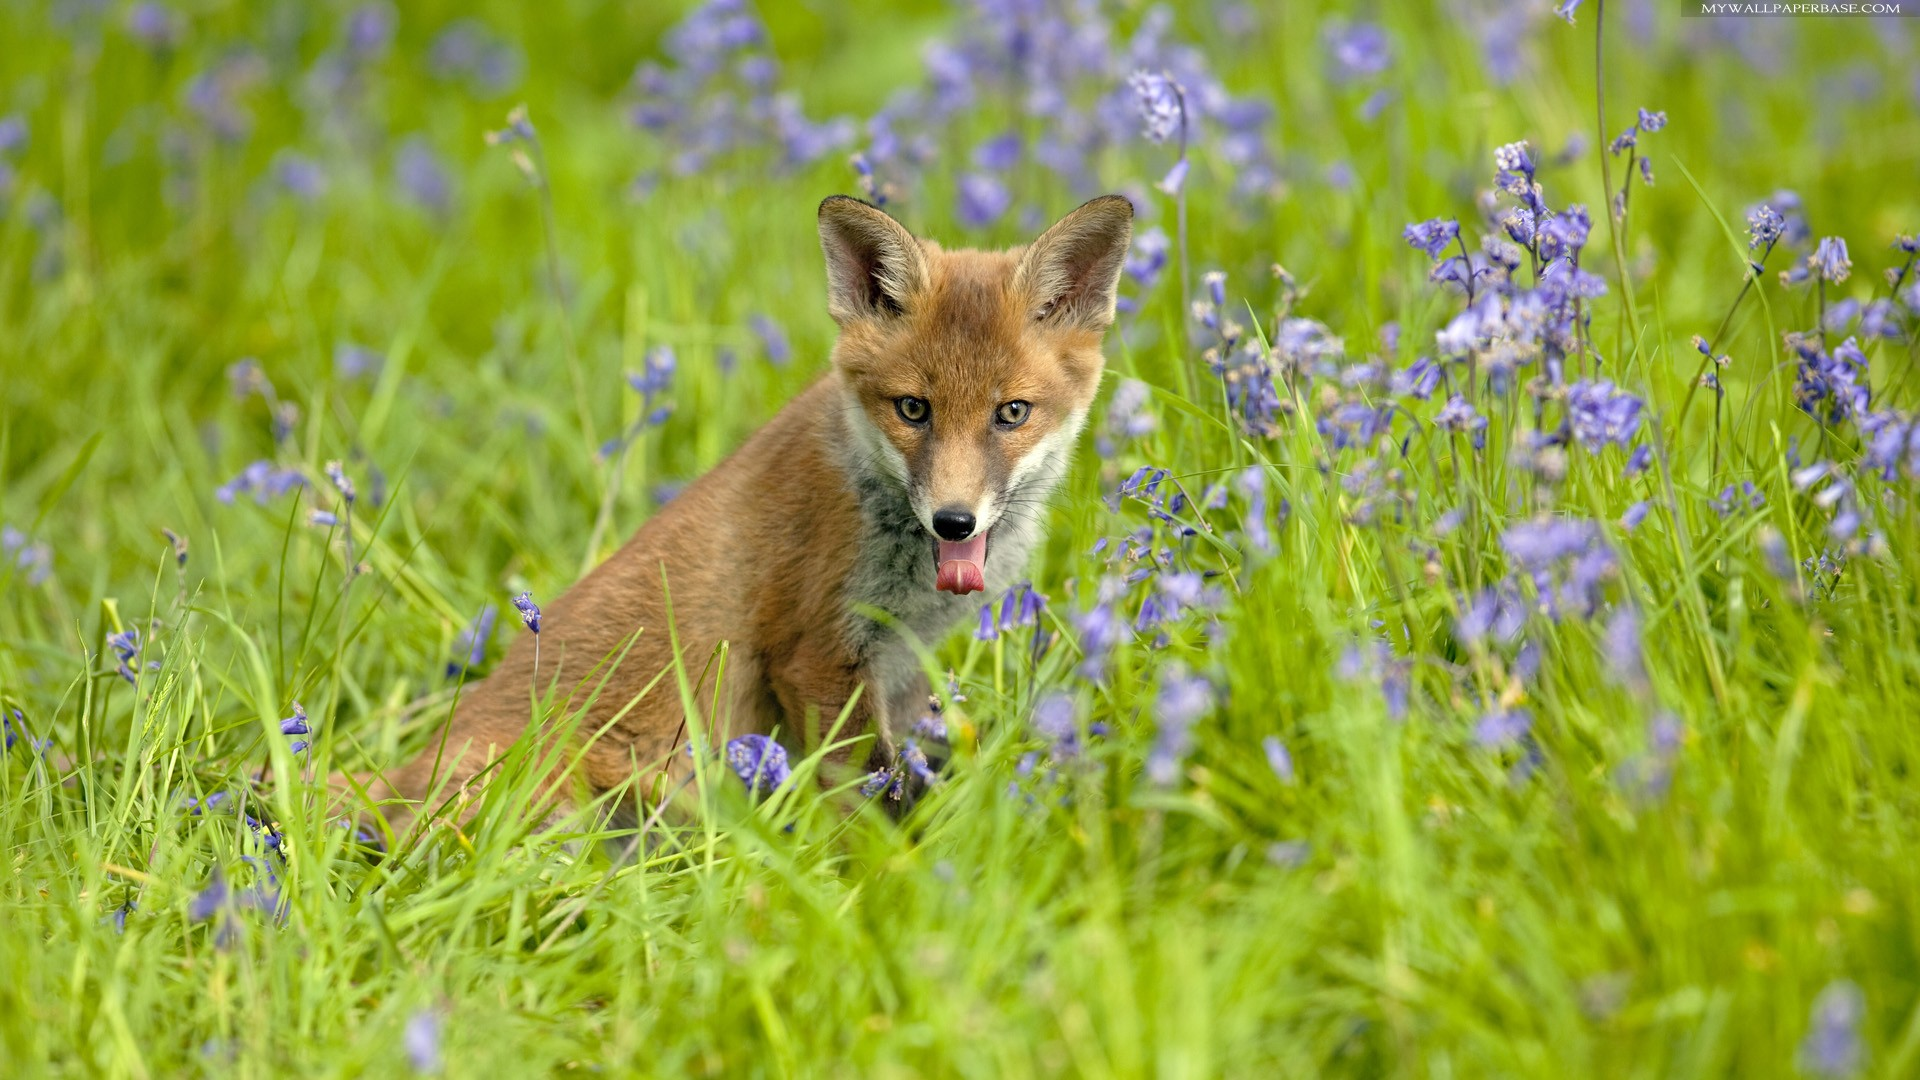 Download Wallpapers Download 2790x2547 Animals Grass: Fox Full HD Wallpaper And Background Image